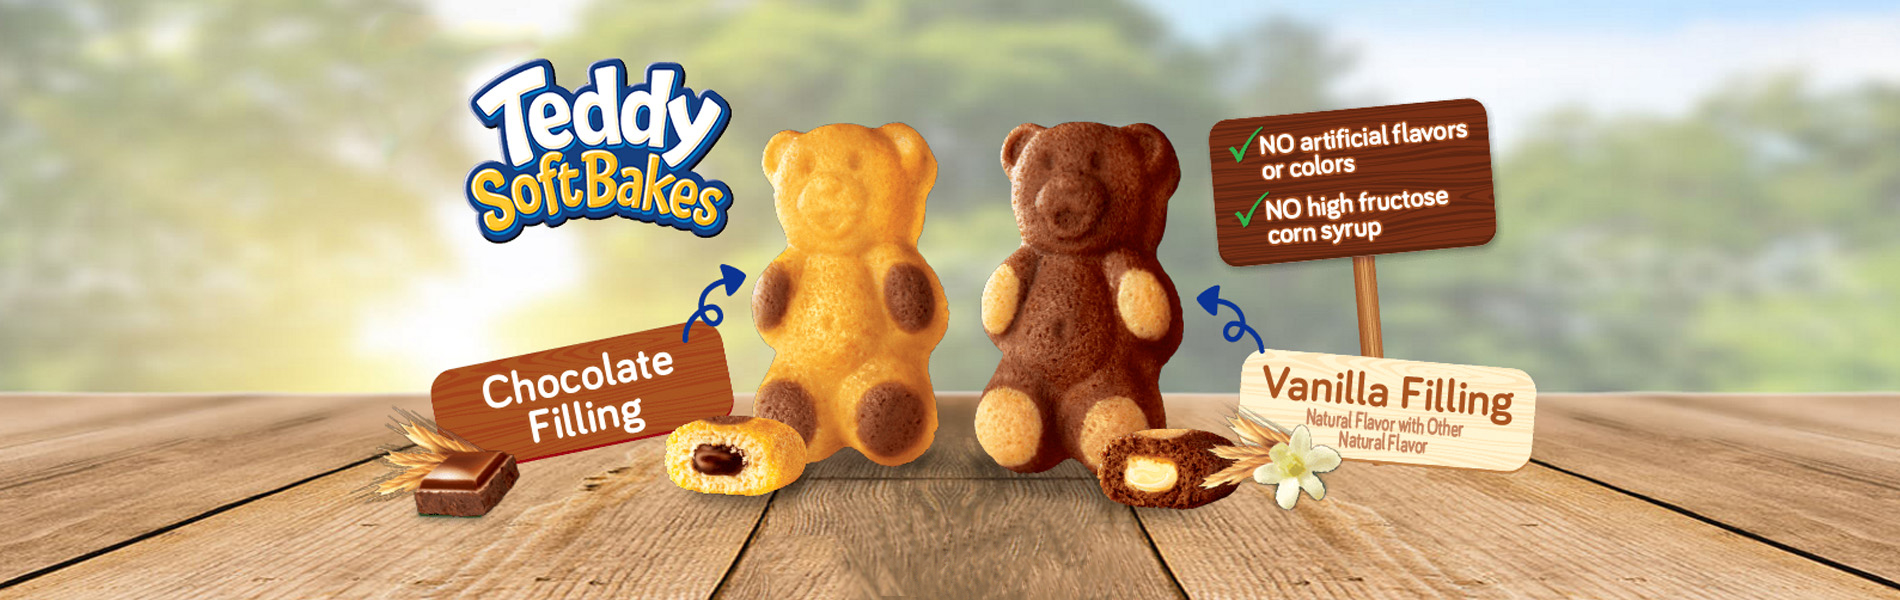 new teddy soft bakes help inspire playful discovery at snack time